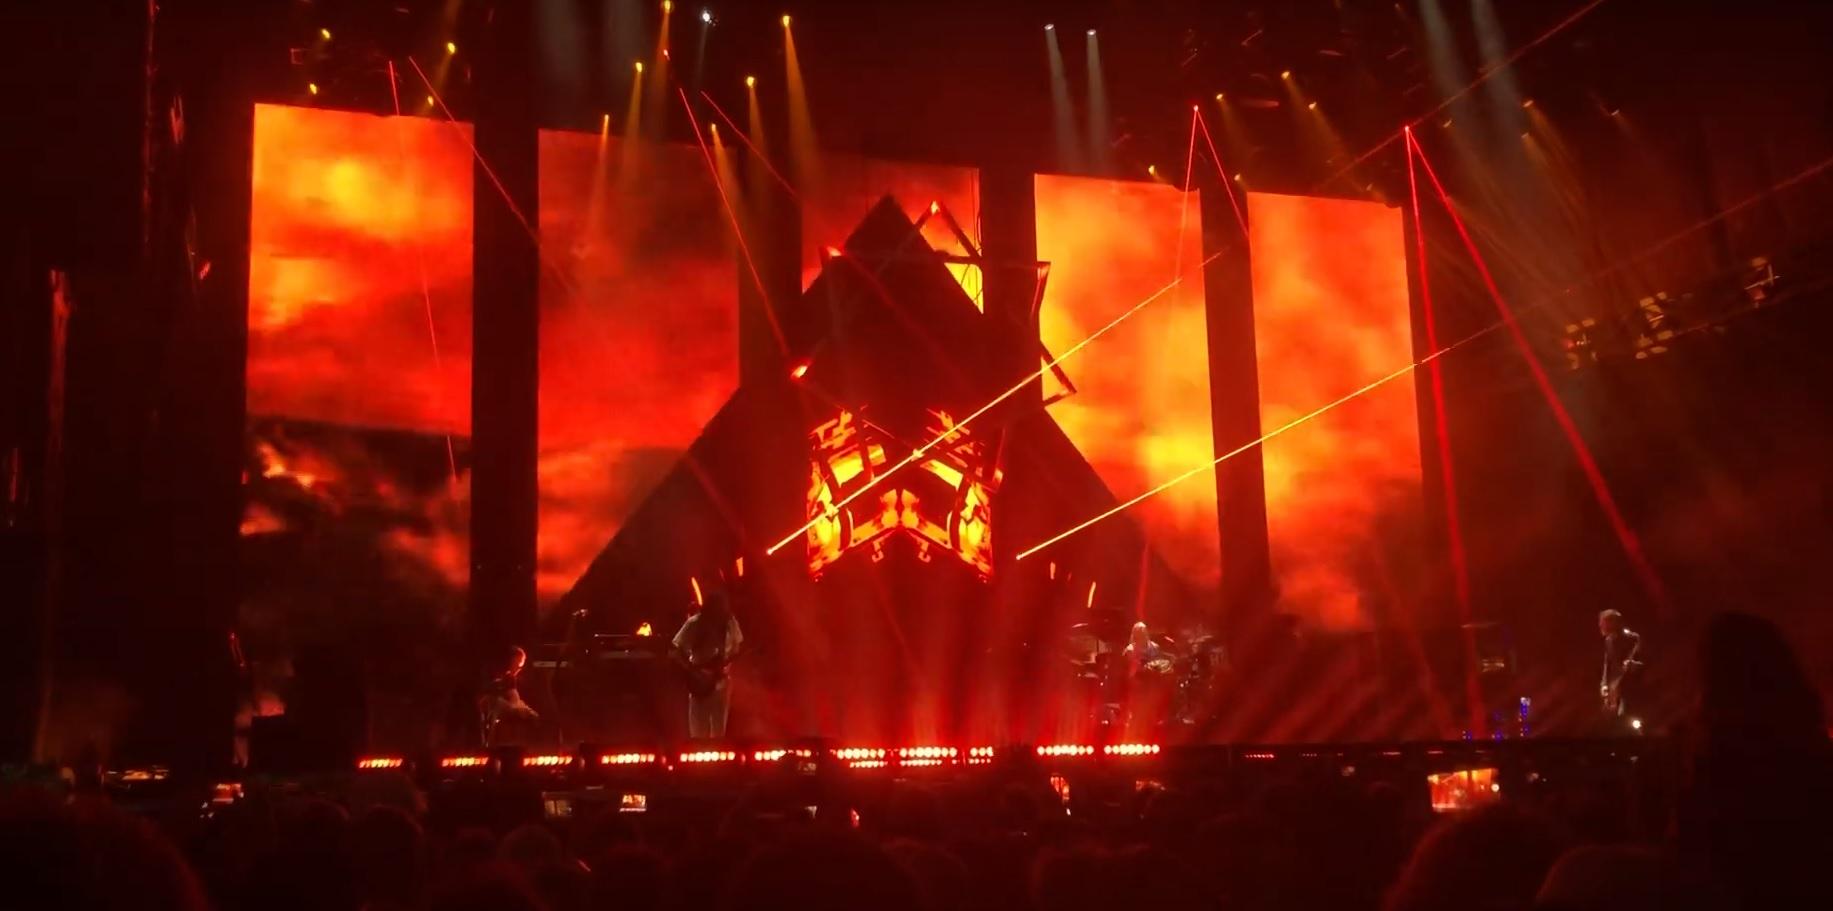 Catch a glimpse of two new Tool songs recorded live at